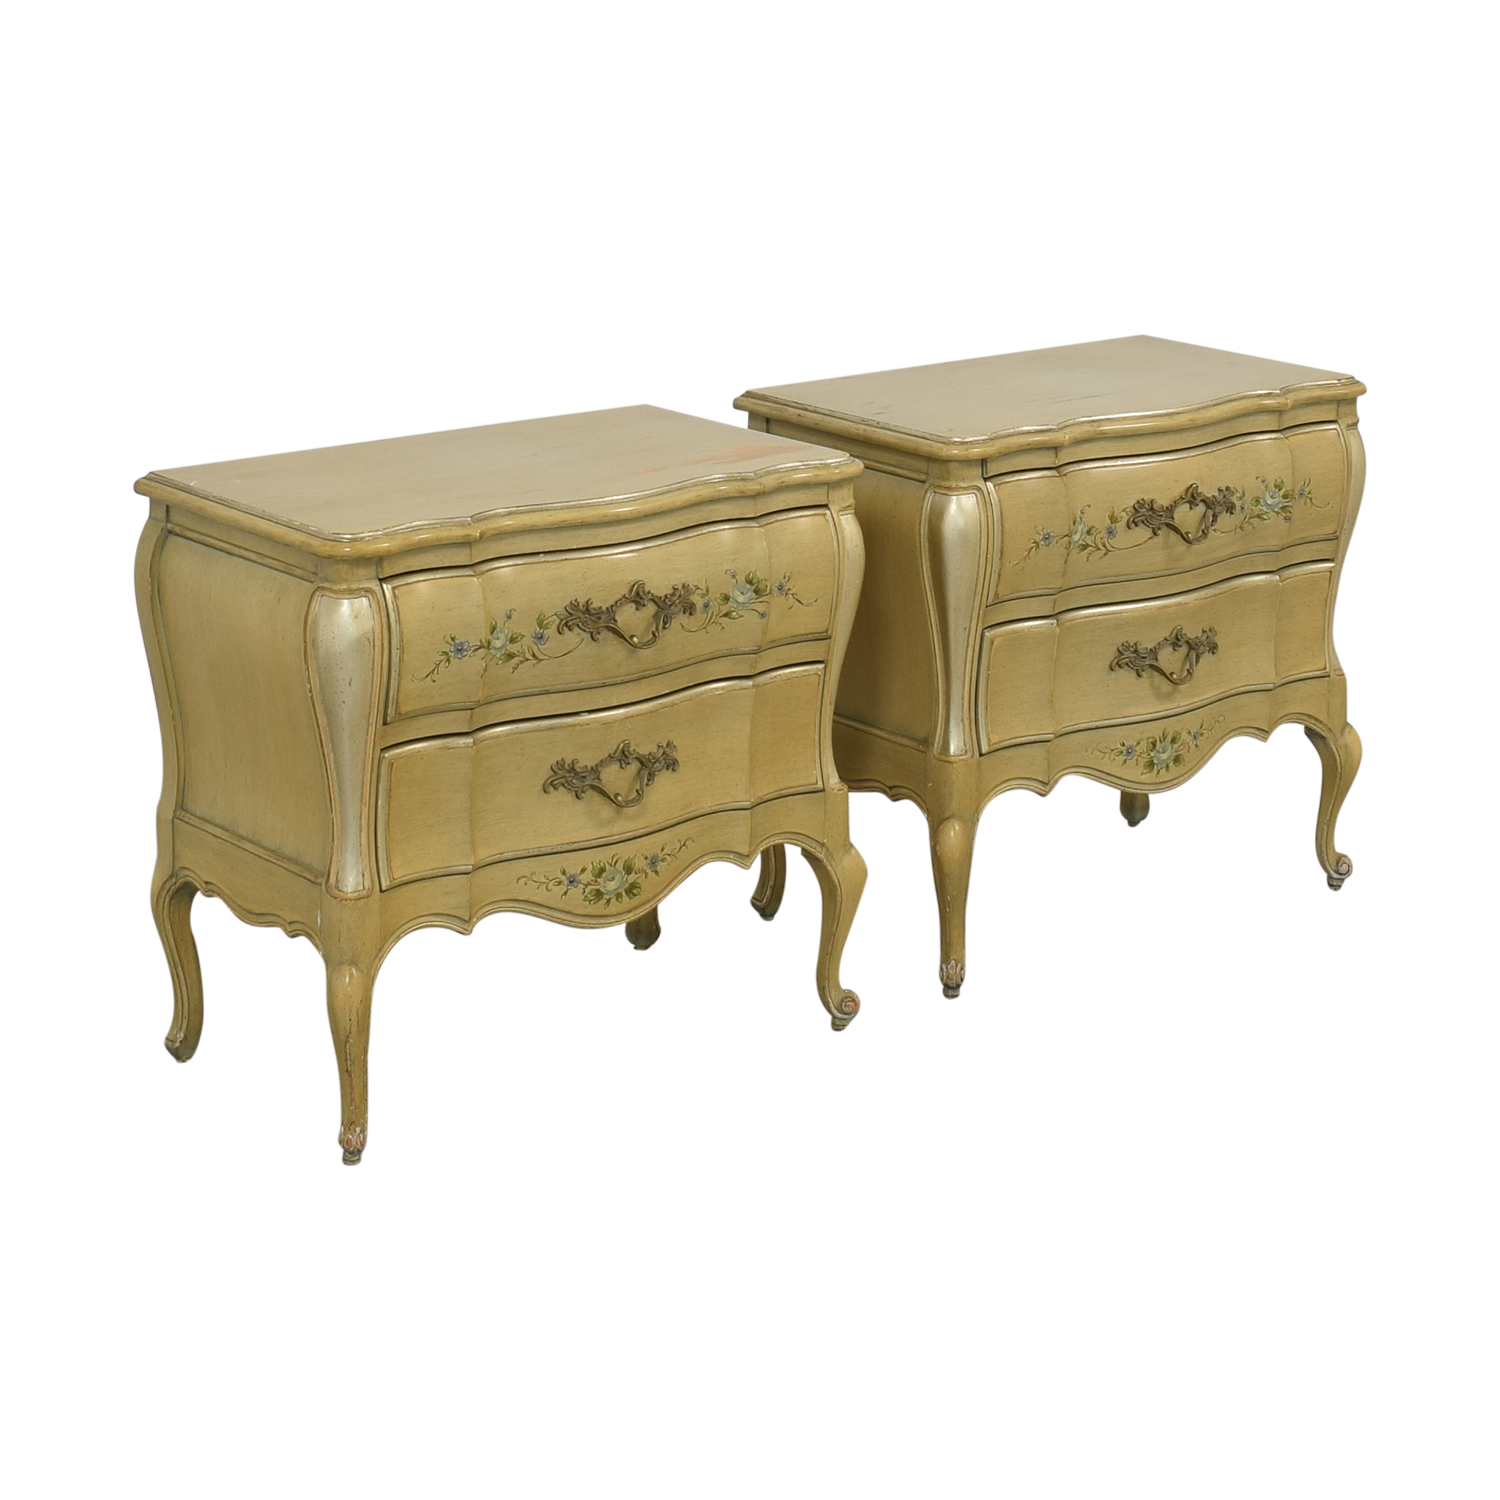 Rucker Industries Rucker Industries Dixon Powdermaker French Provincial Style Nightstands coupon